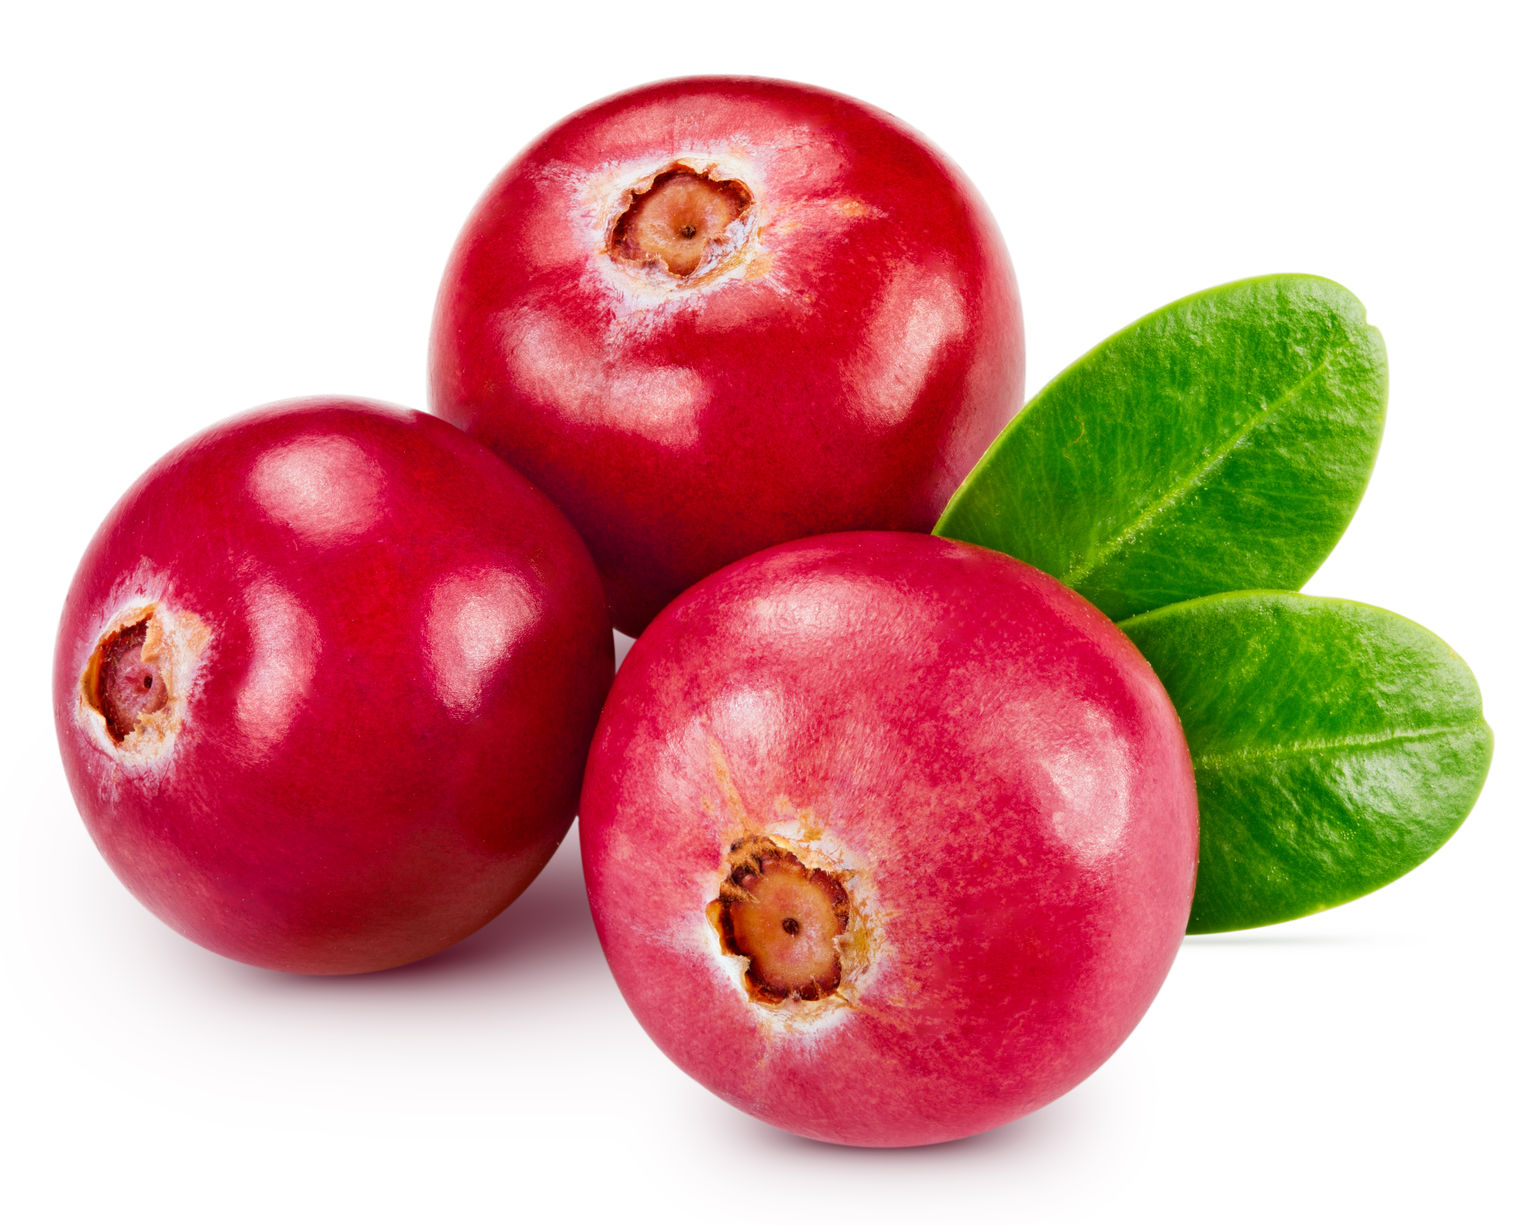 cranberry prevents urinary tract infections from prostate cancer radiation